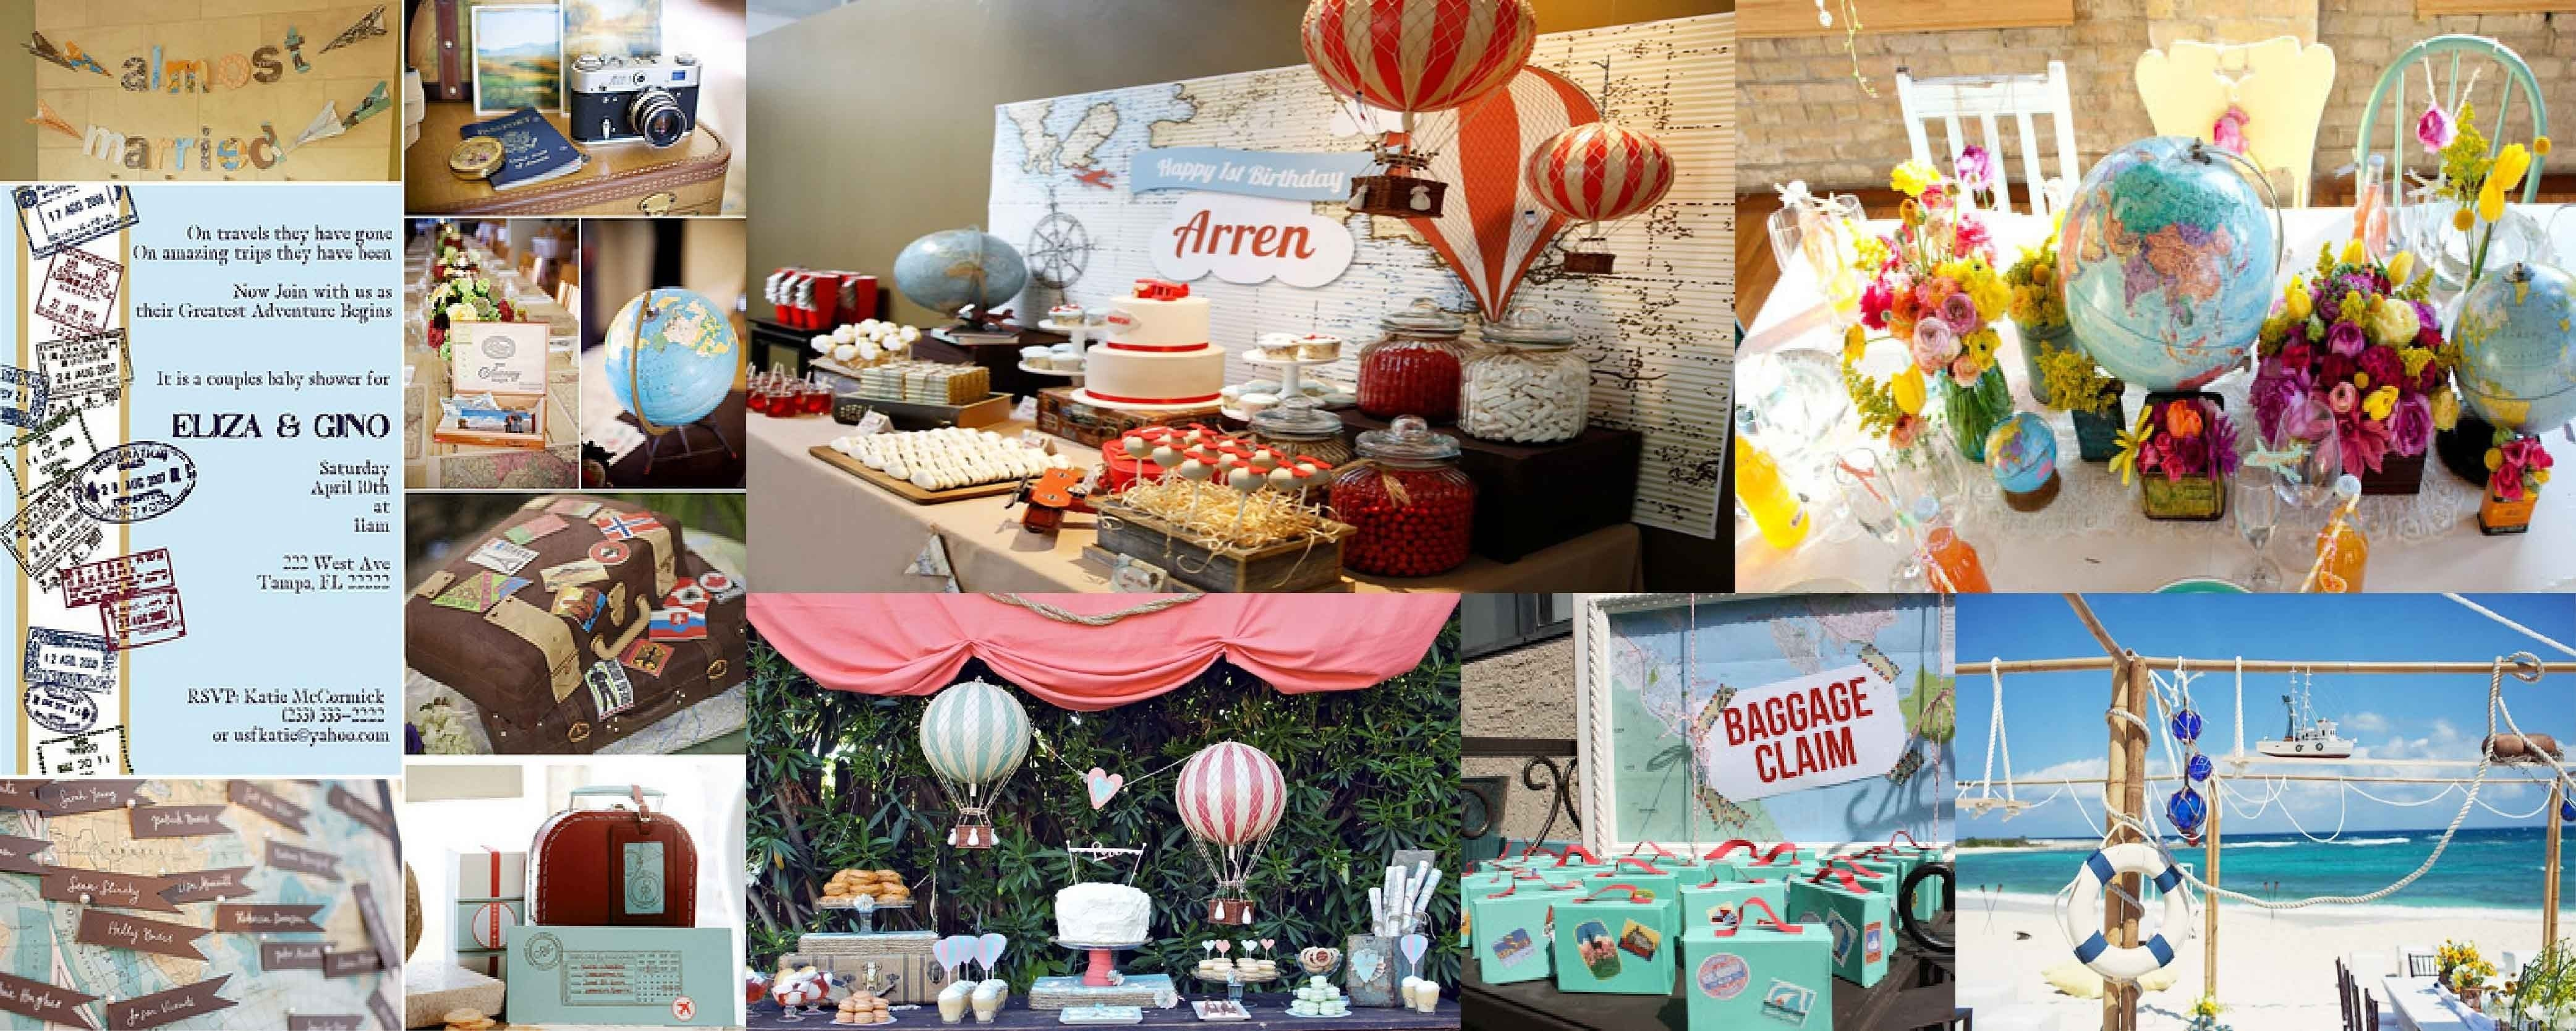 10 Great Around The World Party Ideas pingulcin soyer on party concepts pinterest event management